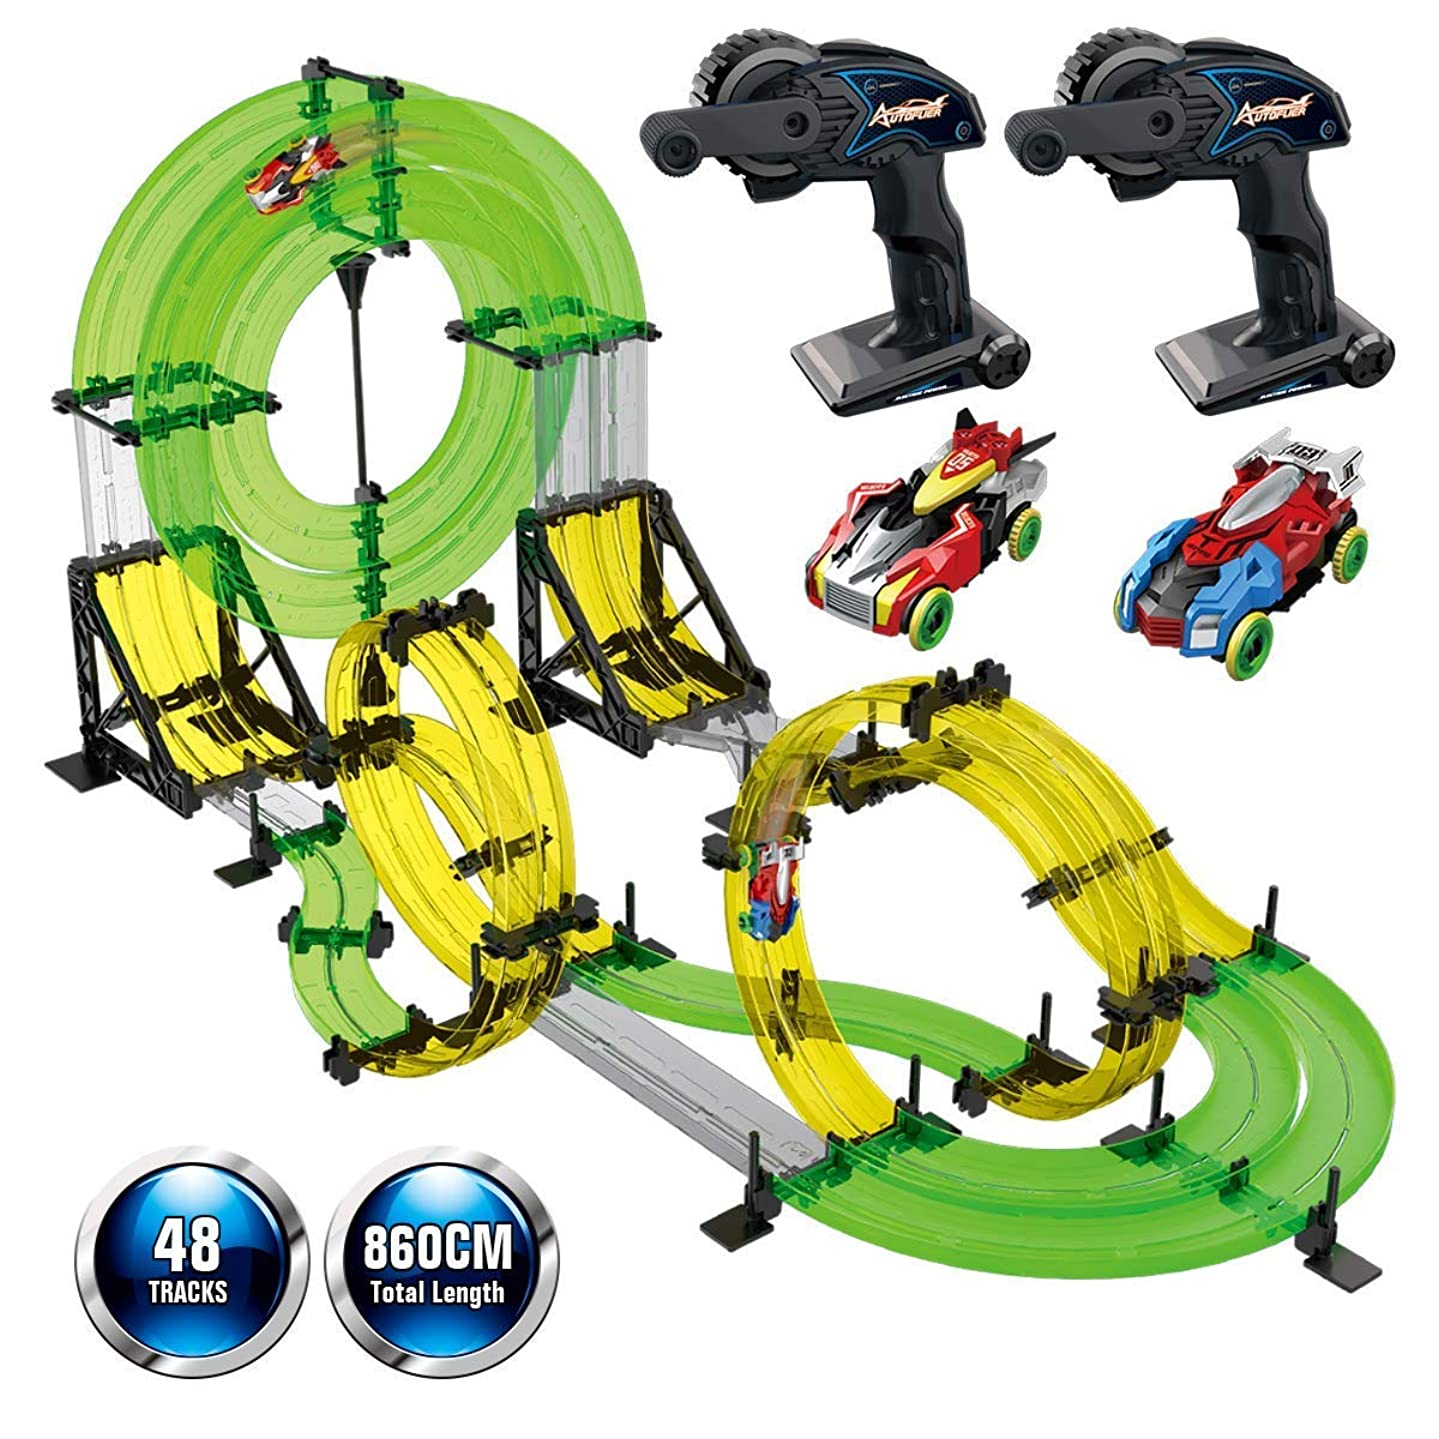 Bullker Rail Race RC Track Car Toys 860cm Build Your Own 3D Super Track Ultimate Slot Car Playset 2 Cars 2 Remote Controller Party Game Kids Friends